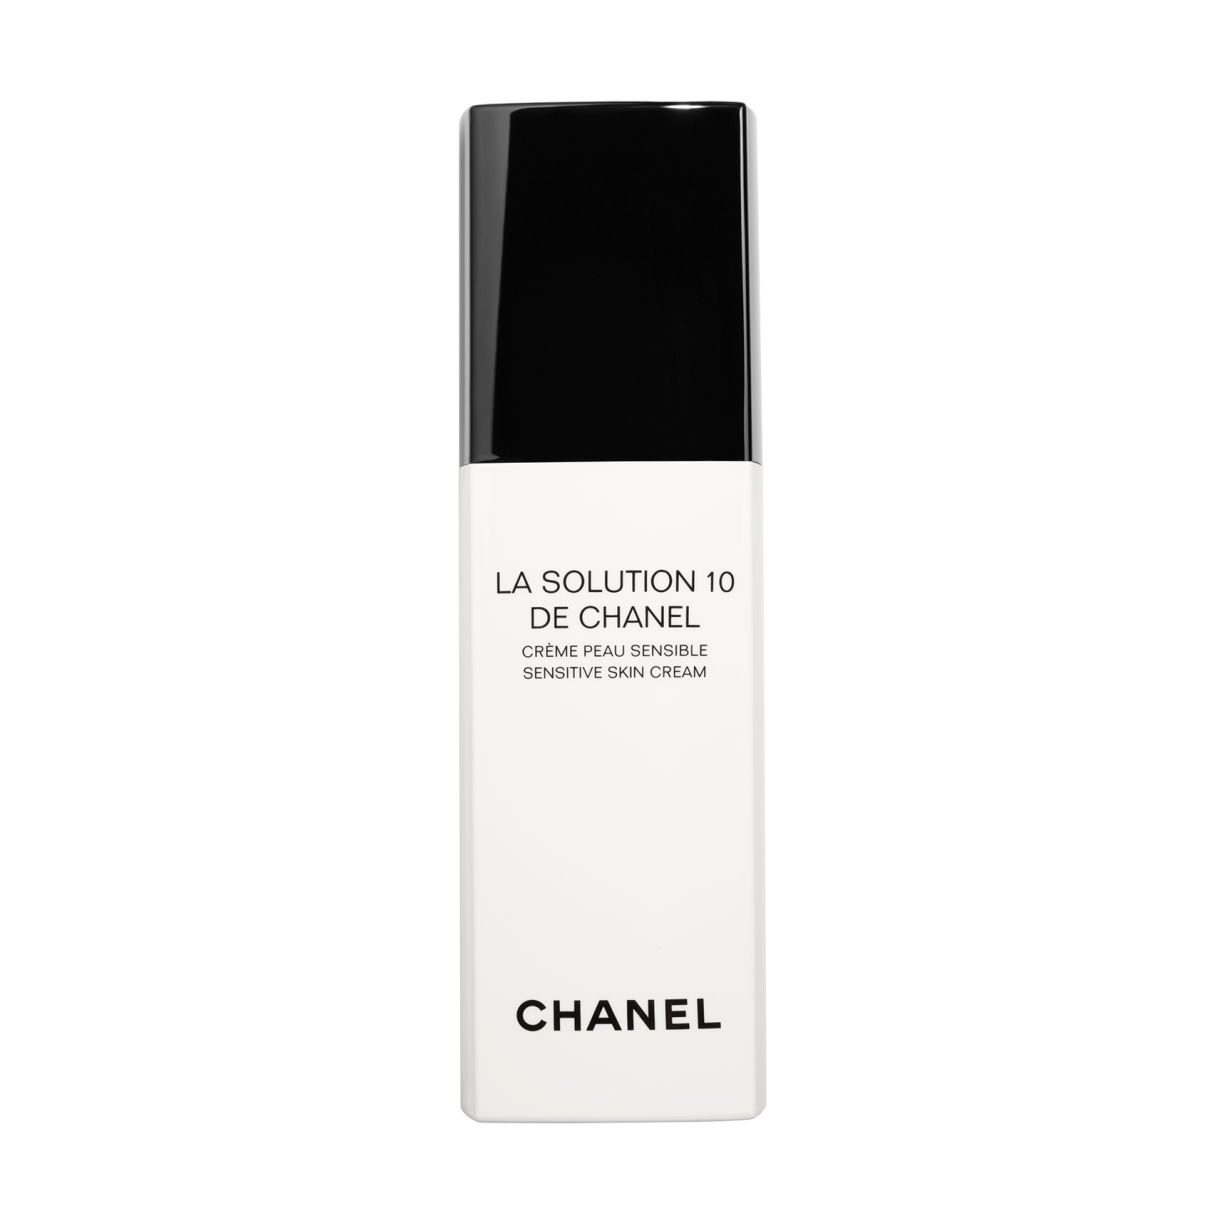 LA SOLUTION 10 DE CHANEL EMULSION FÜR SENSIBLE HAUT